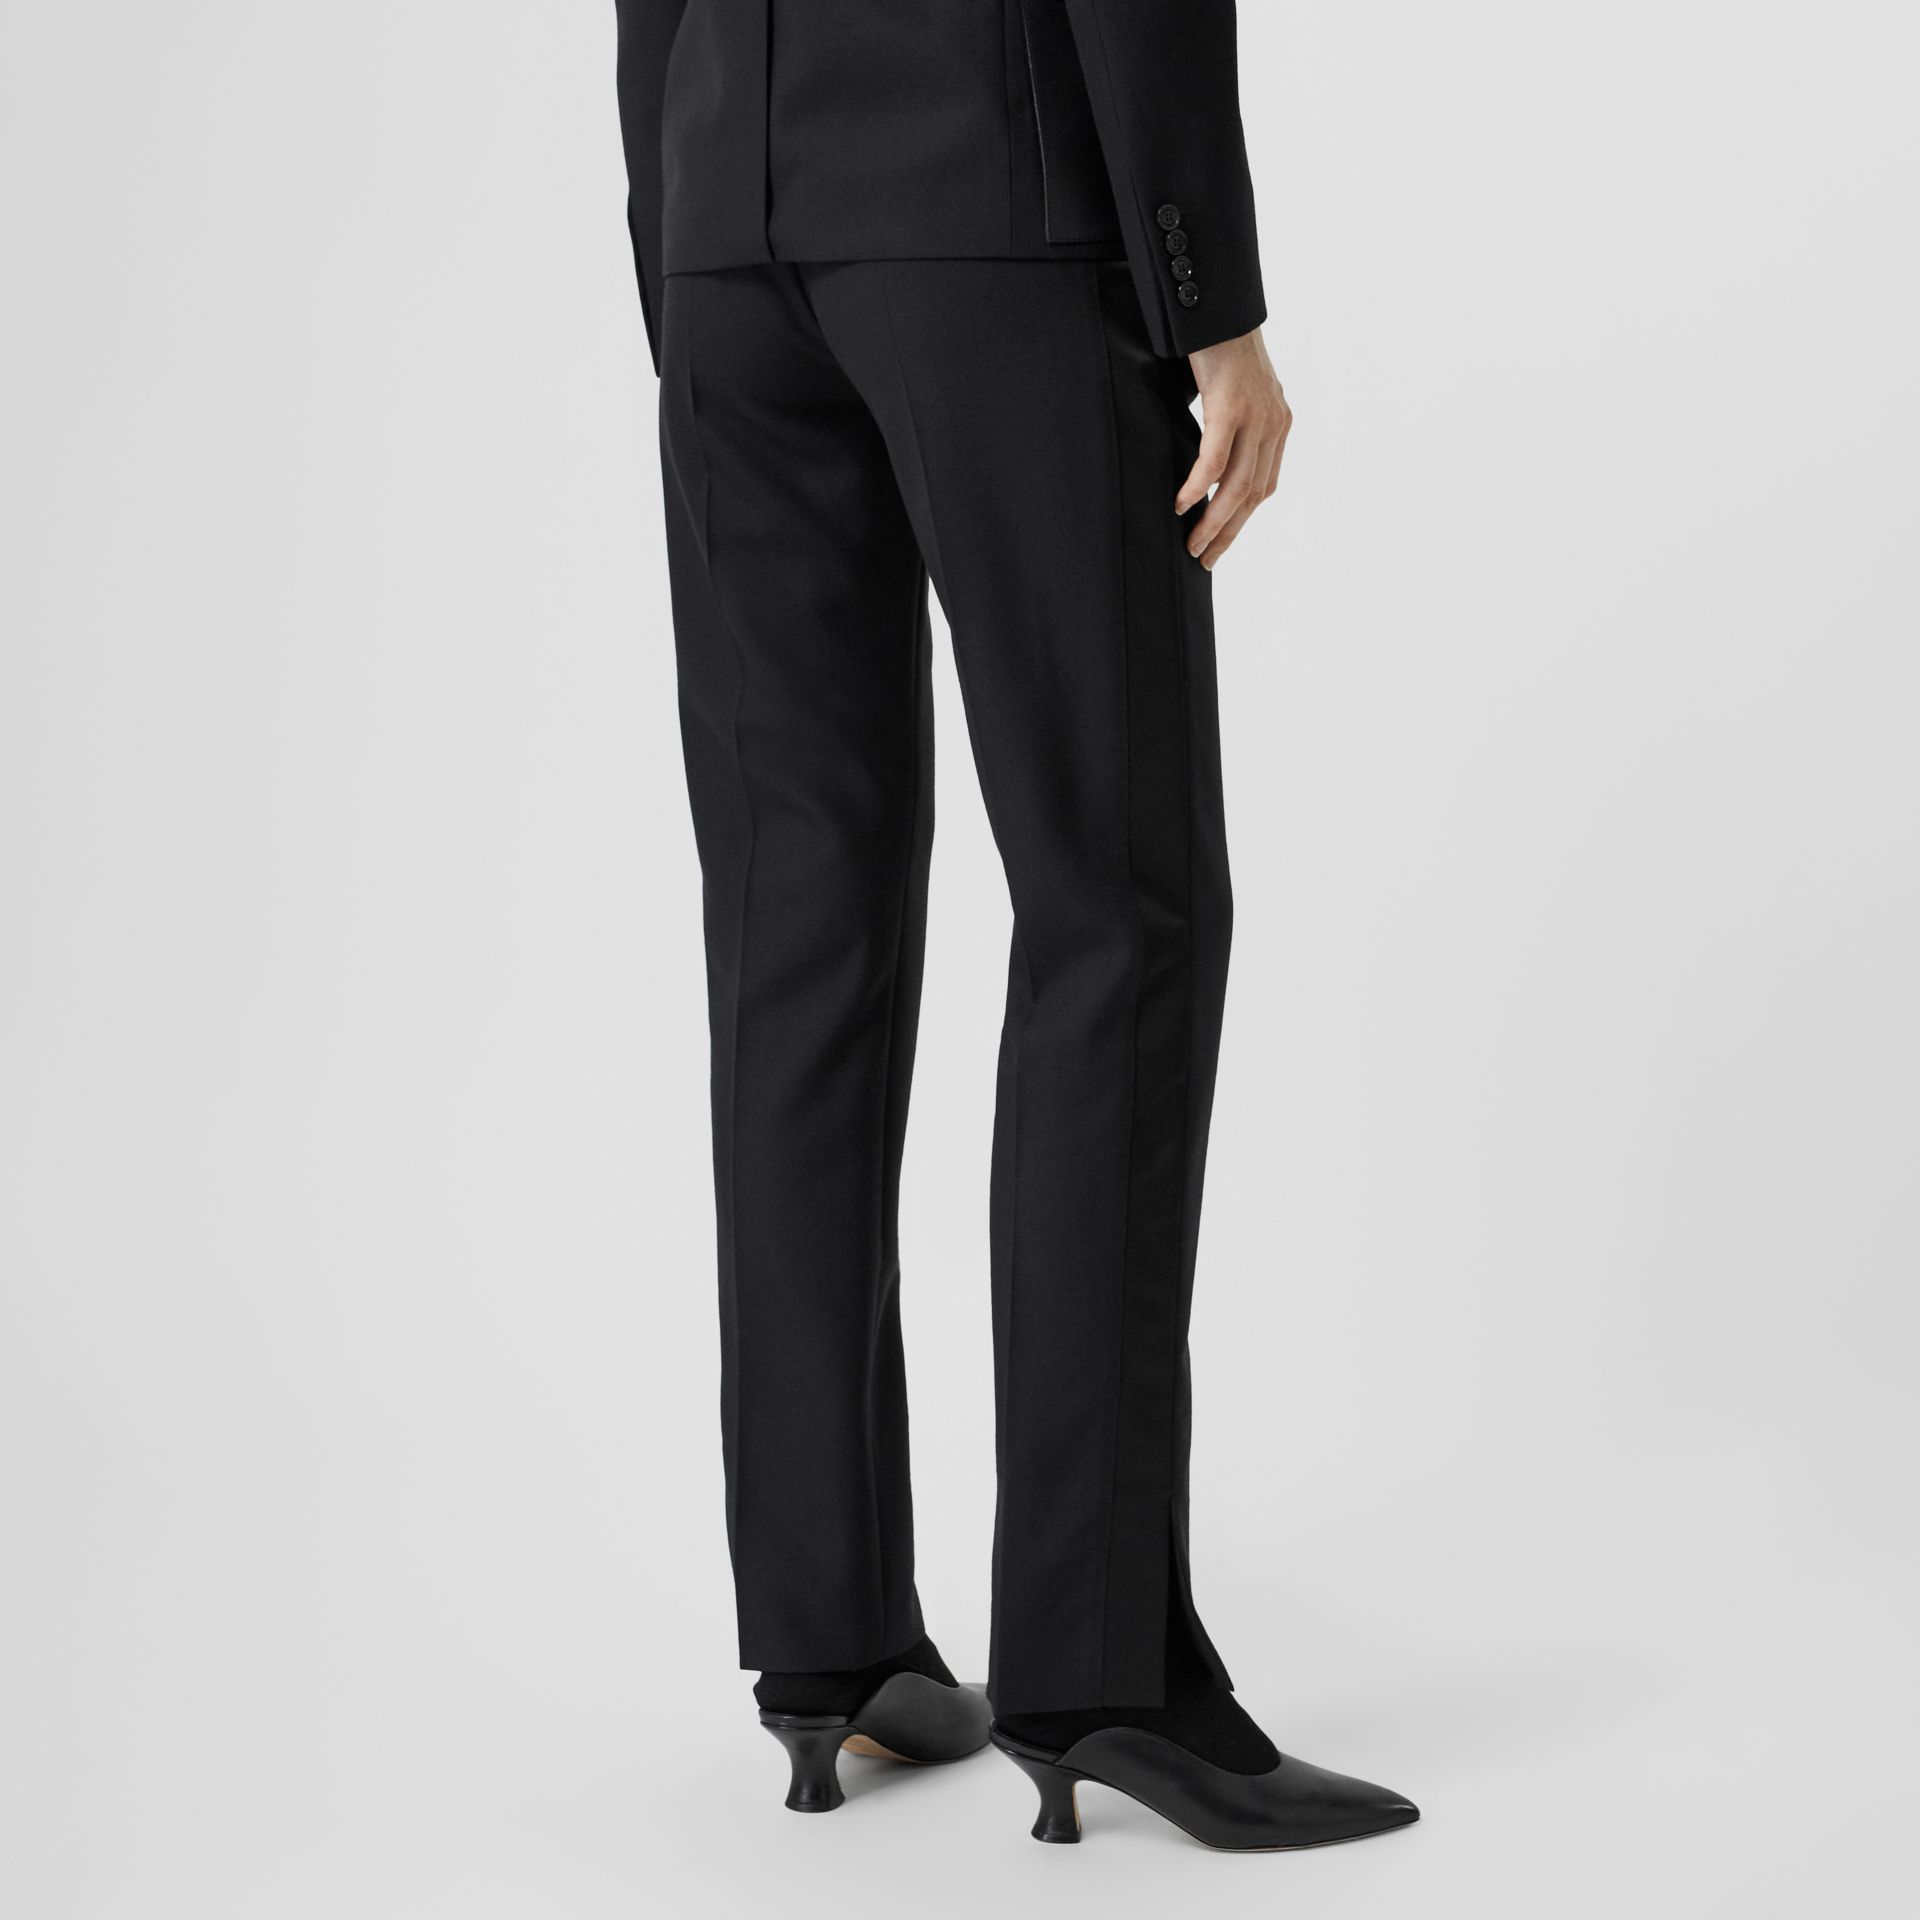 Satin Stripe Detail Wool Tailored Trousers in Black - Women | Burberry United States - gallery image 2